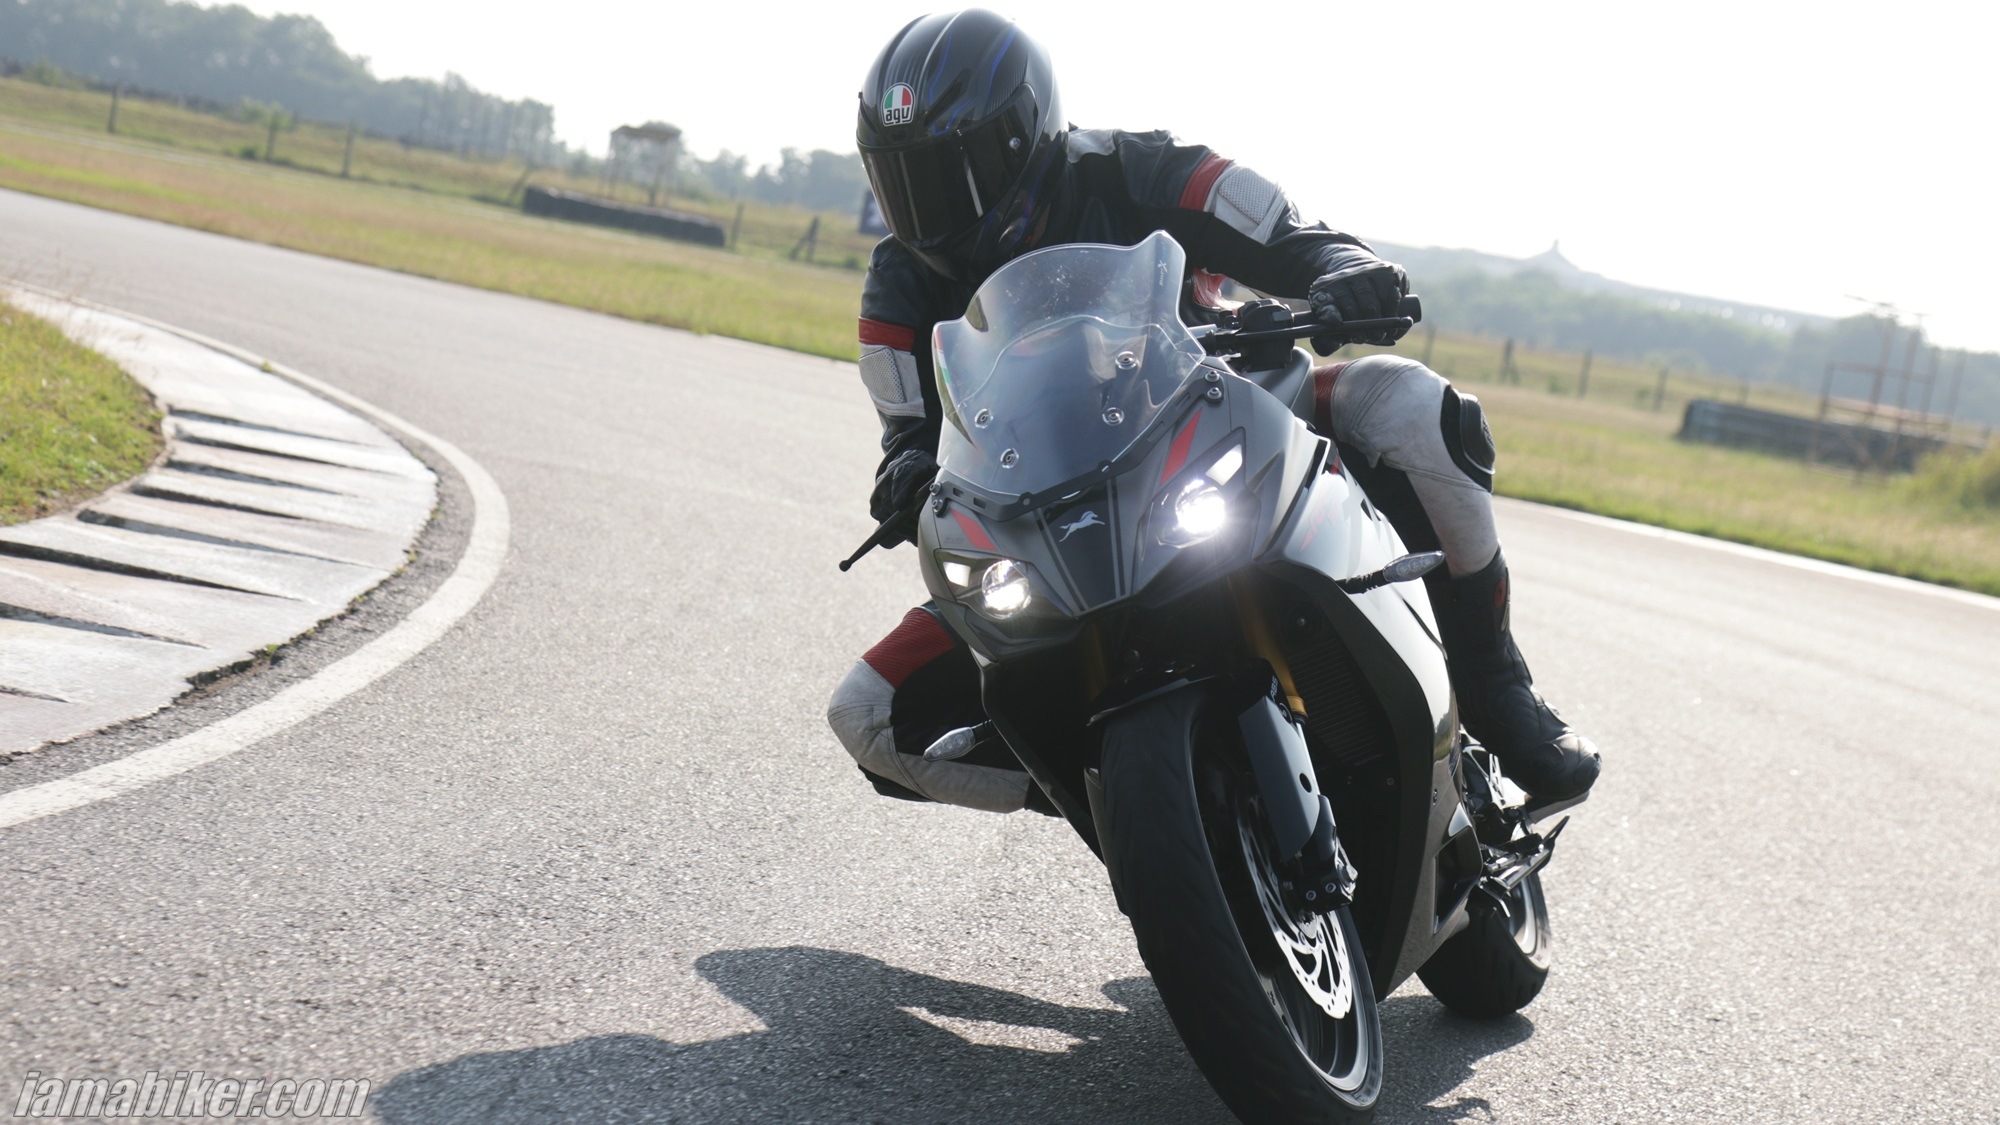 2020 BS6 TVS Apache RR 310 first ride review